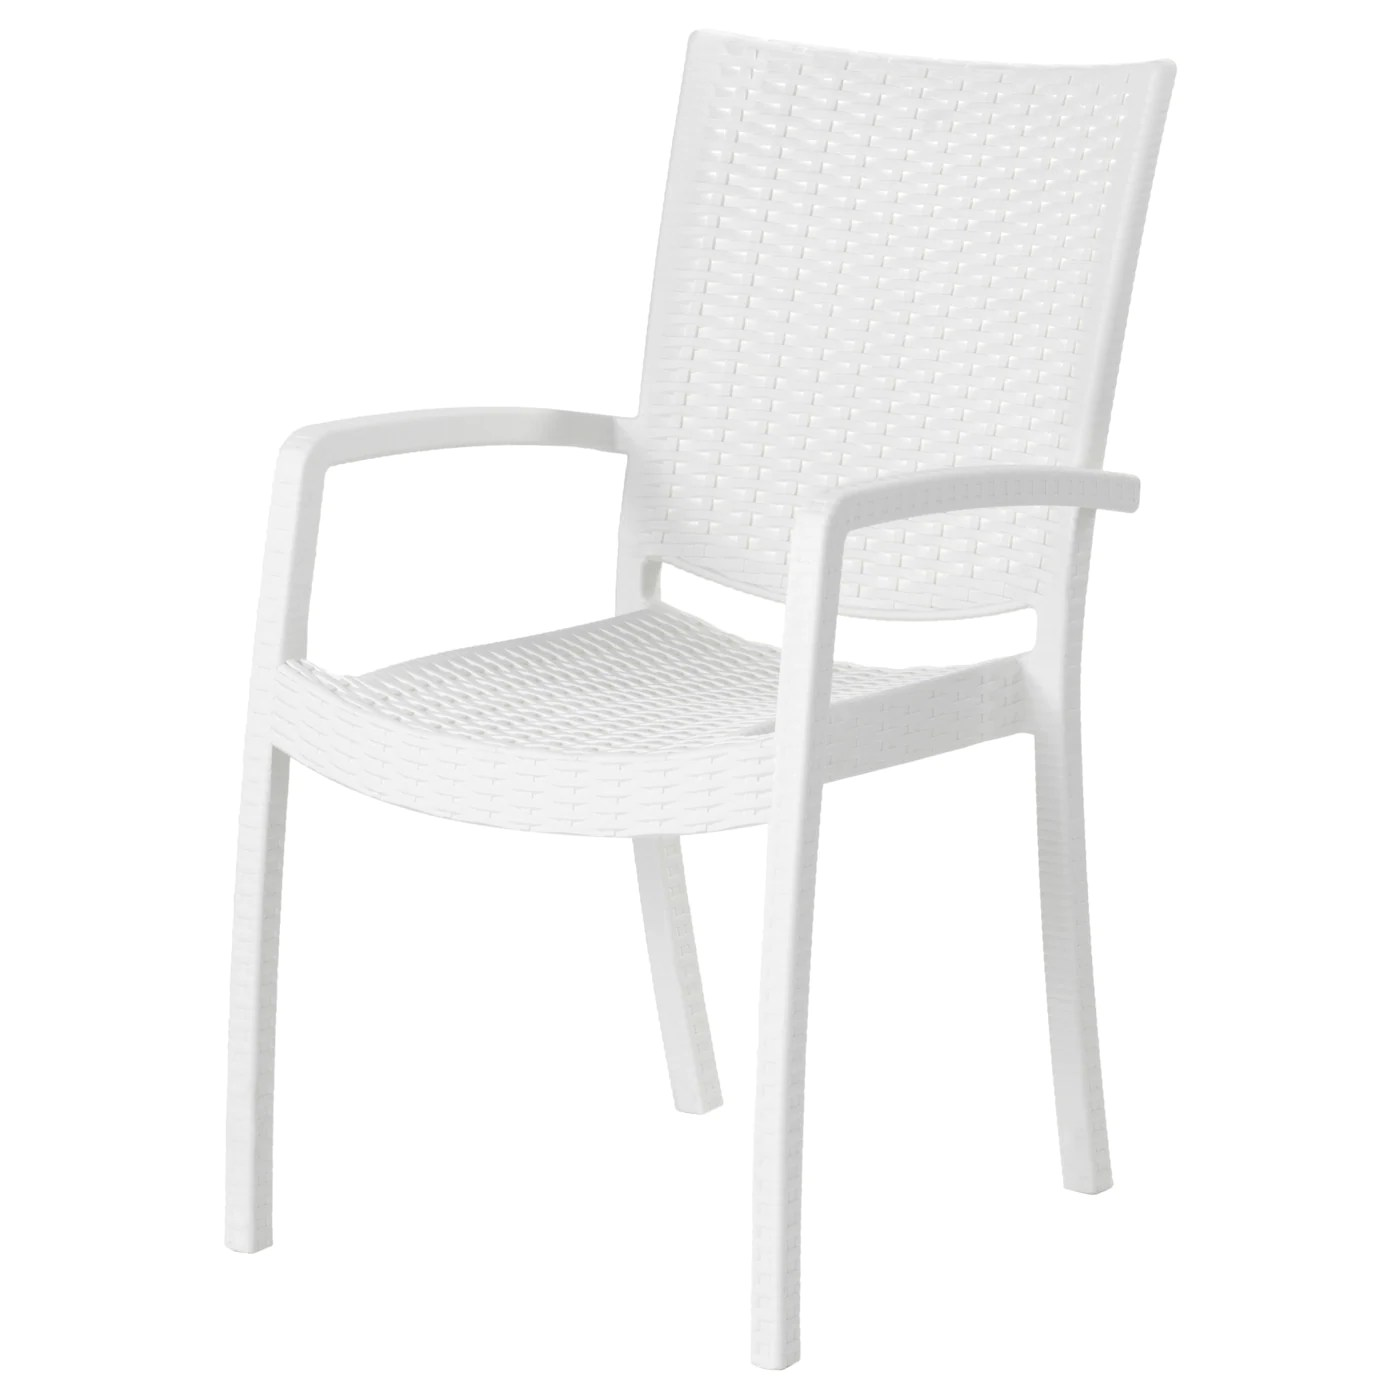 White Chair Ikea Innamo Chair With Armrests Outdoor White Ikea